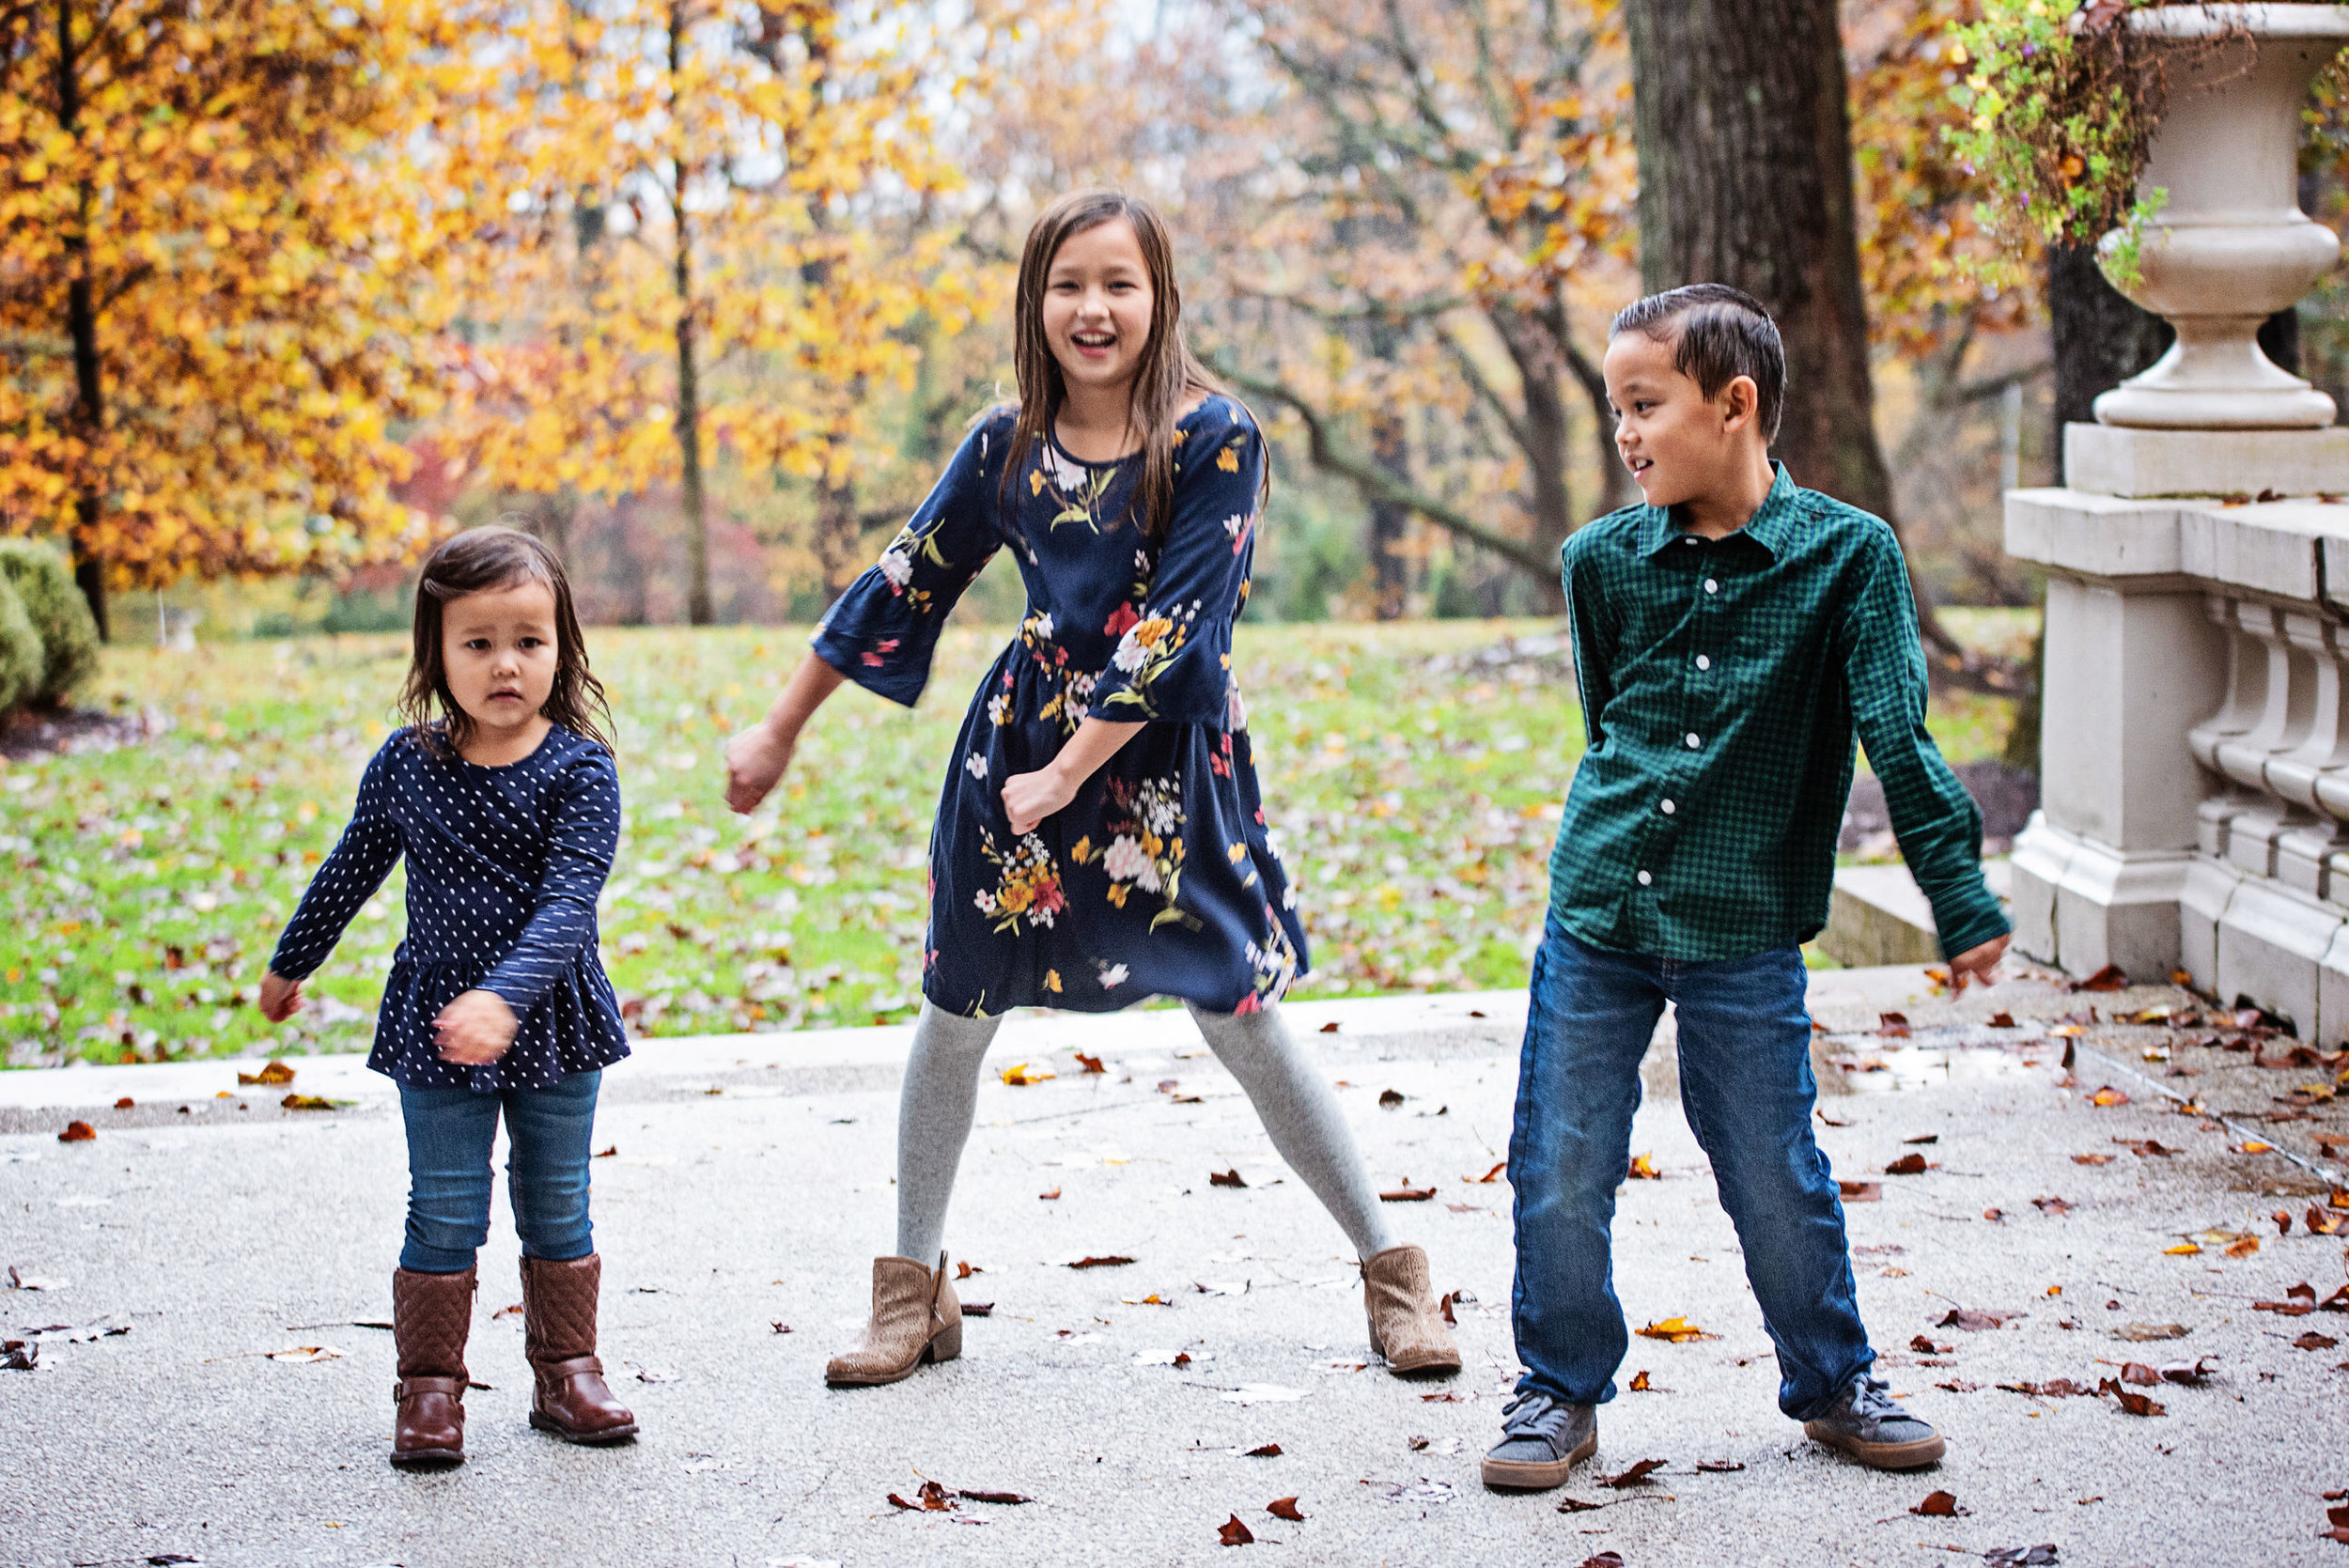 MarylandFamilyPhotography-LienFamily2018-23.jpg